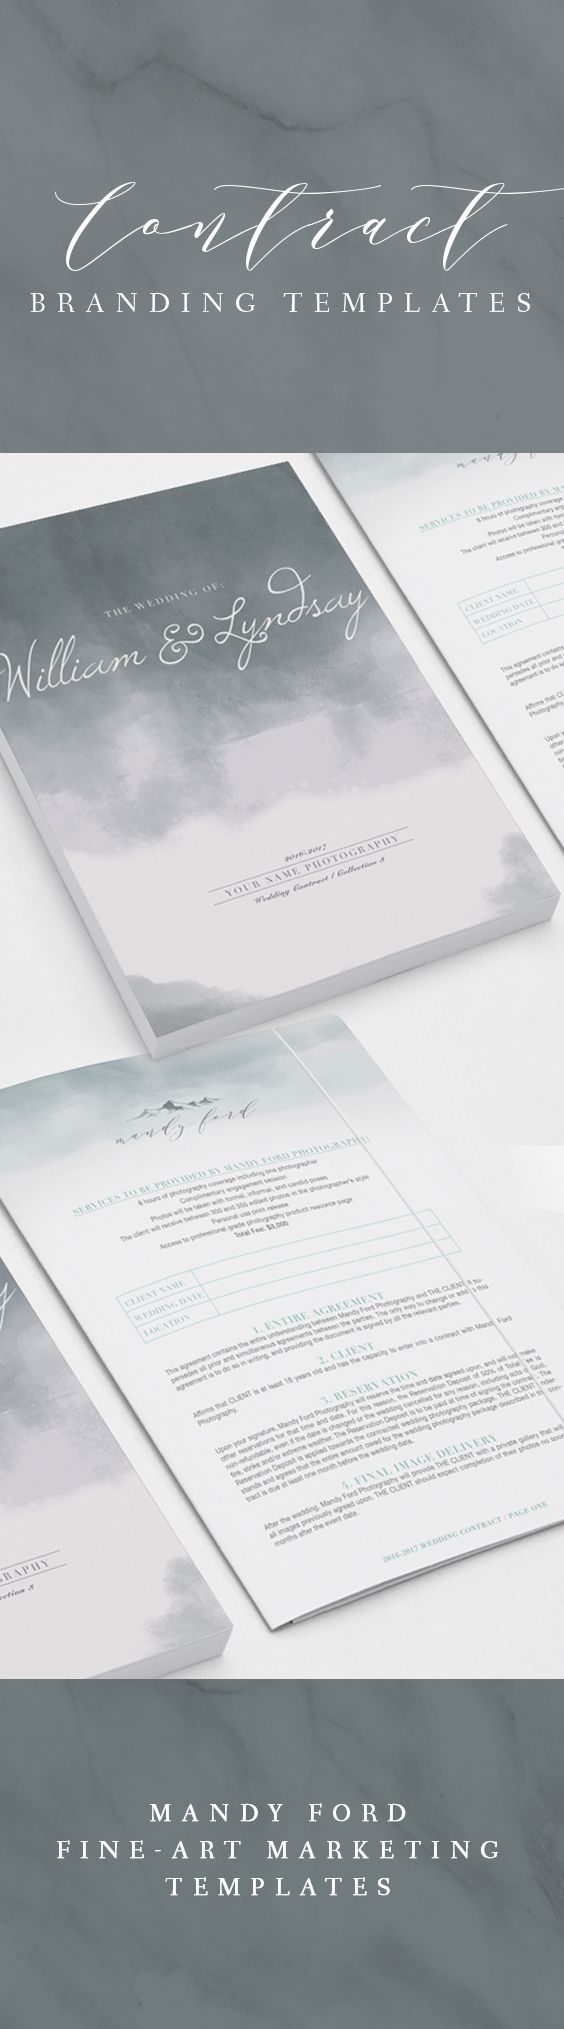 Wedding Photography Contract - Storm - Custom Branded Template | Business Card Template | Marketing Resources | High End Marketing Templates